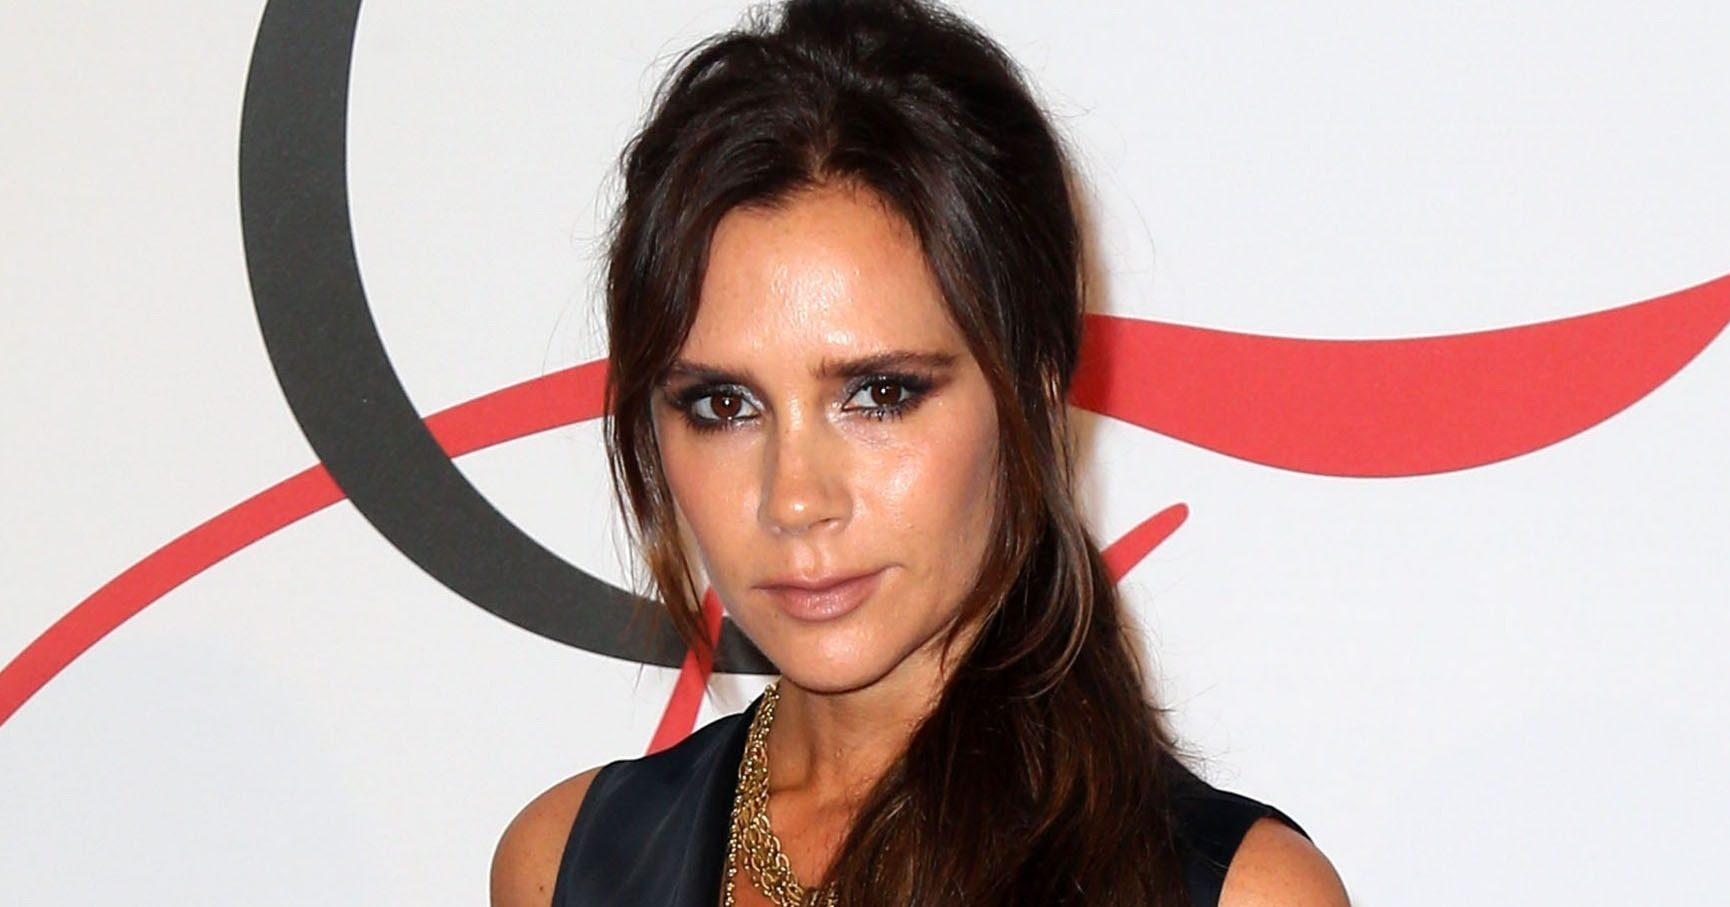 Victoria Beckham celebrates Brooklyn's birthday with PERFECT family photo